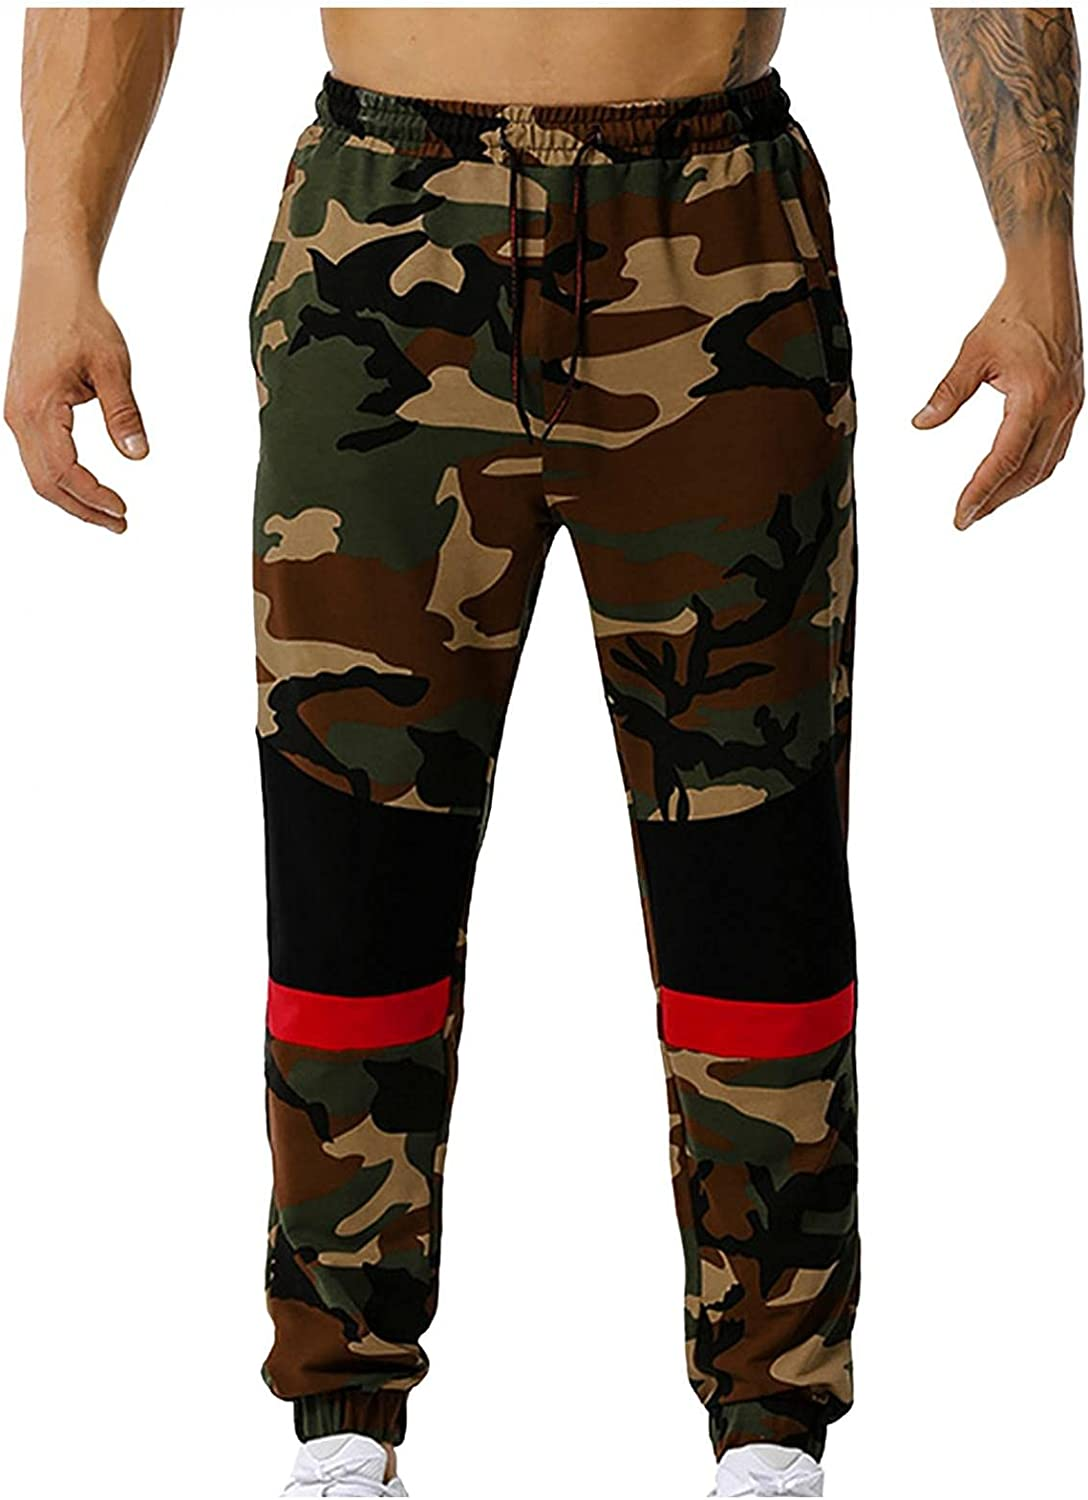 Beshion Sweatpants for Men Camouflage Jogger Gym Workout Running Pants Casual Slim Athletic Sports Trousers with Pocket